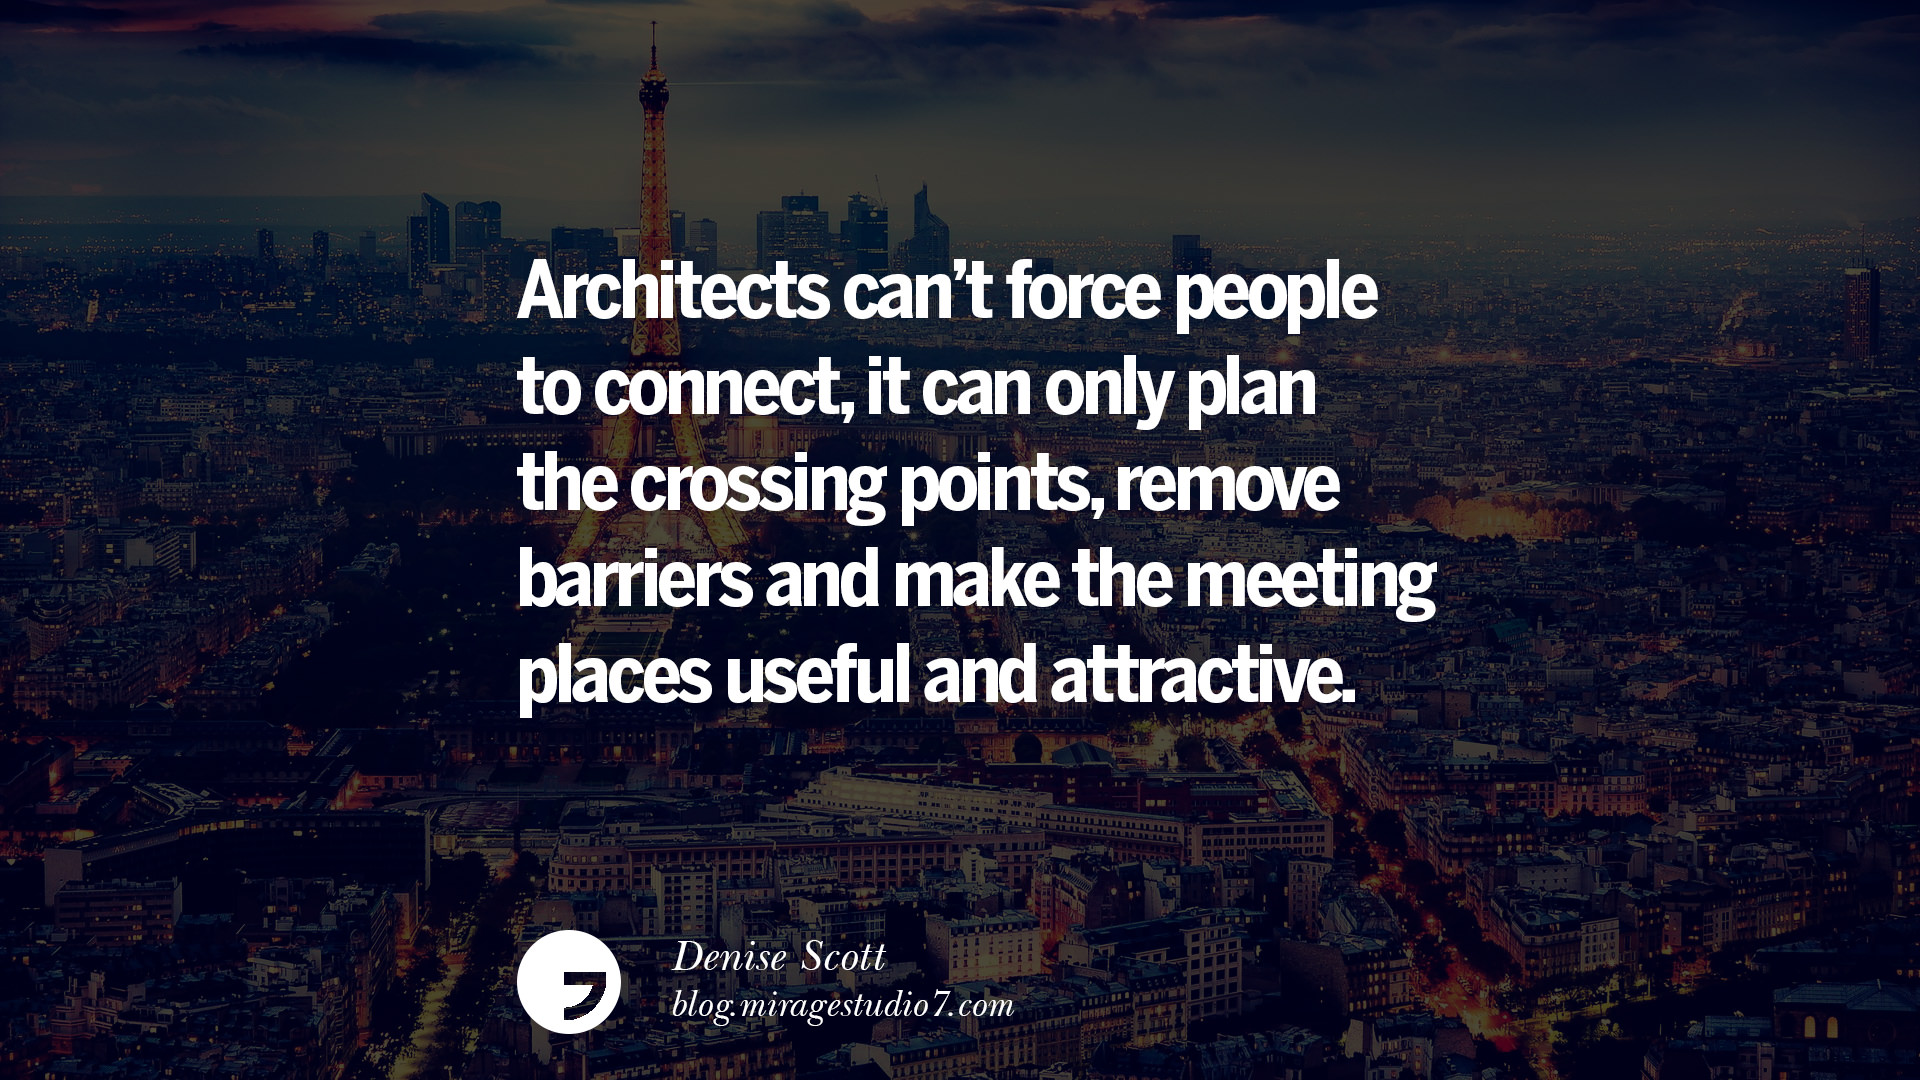 How To Make A Quote Captivating 28 Inspirational Architecture Quotesfamous Architects And